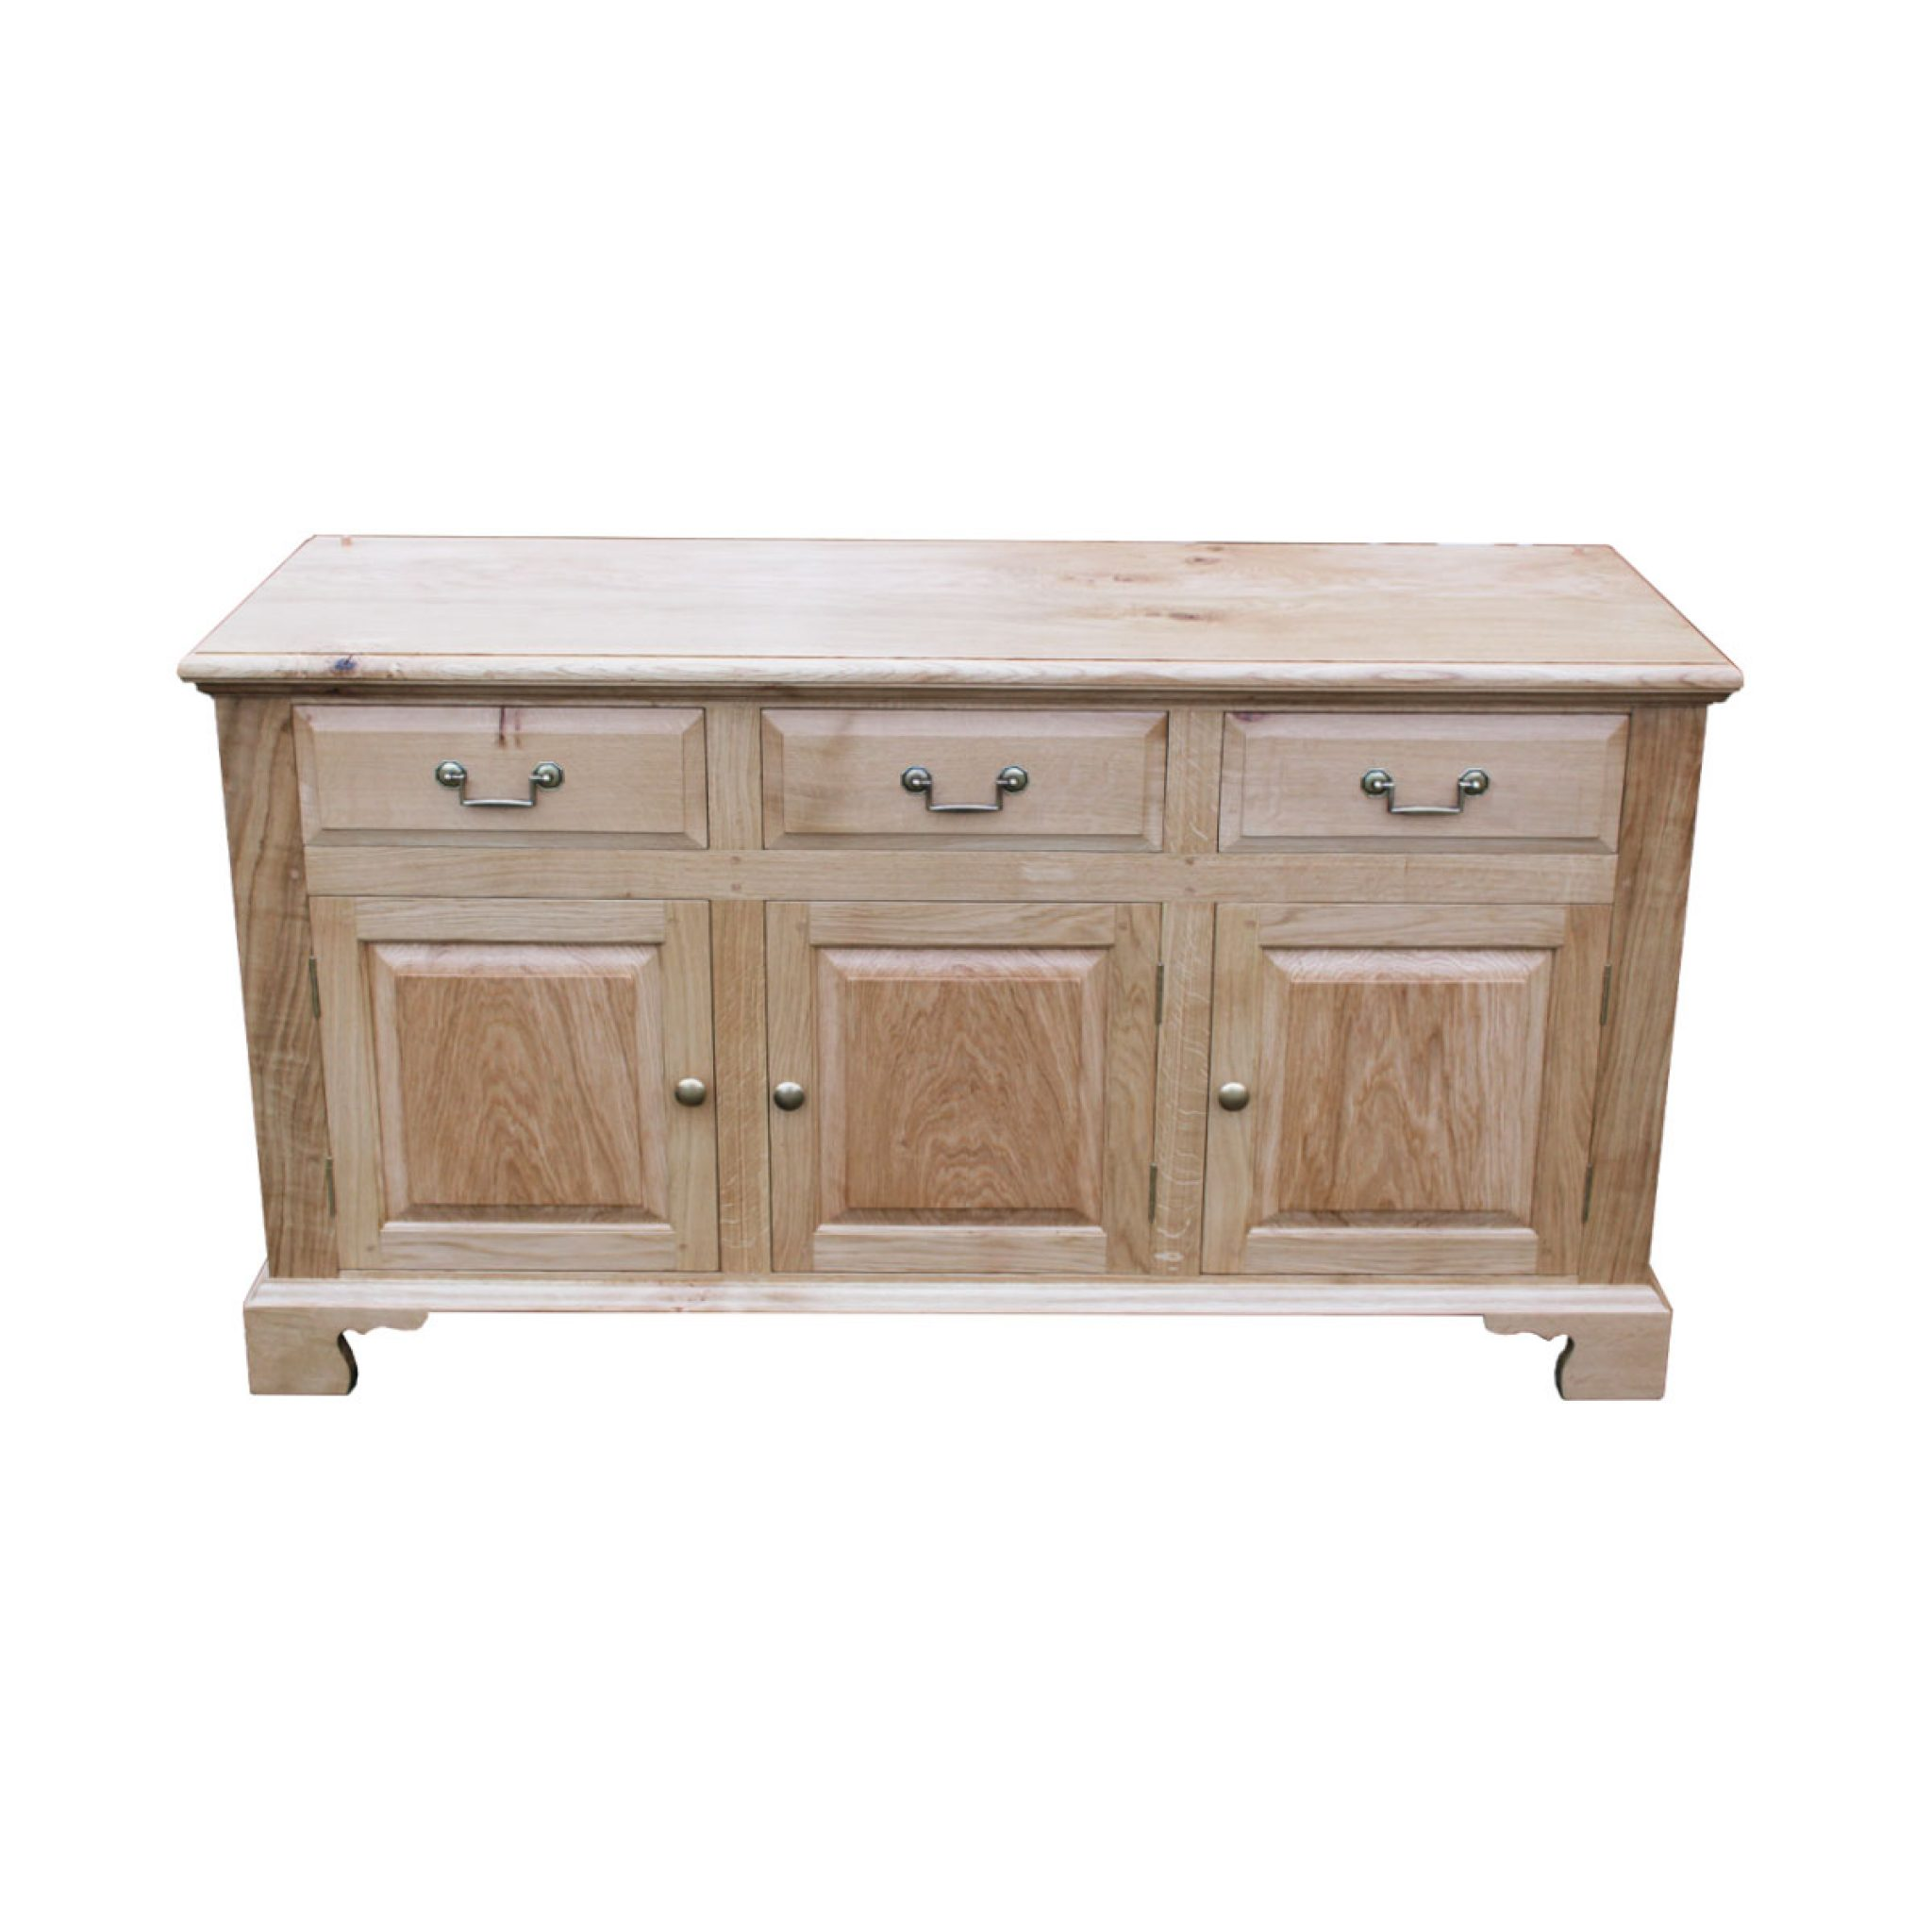 Handmade Oak Furniture Enniskillen